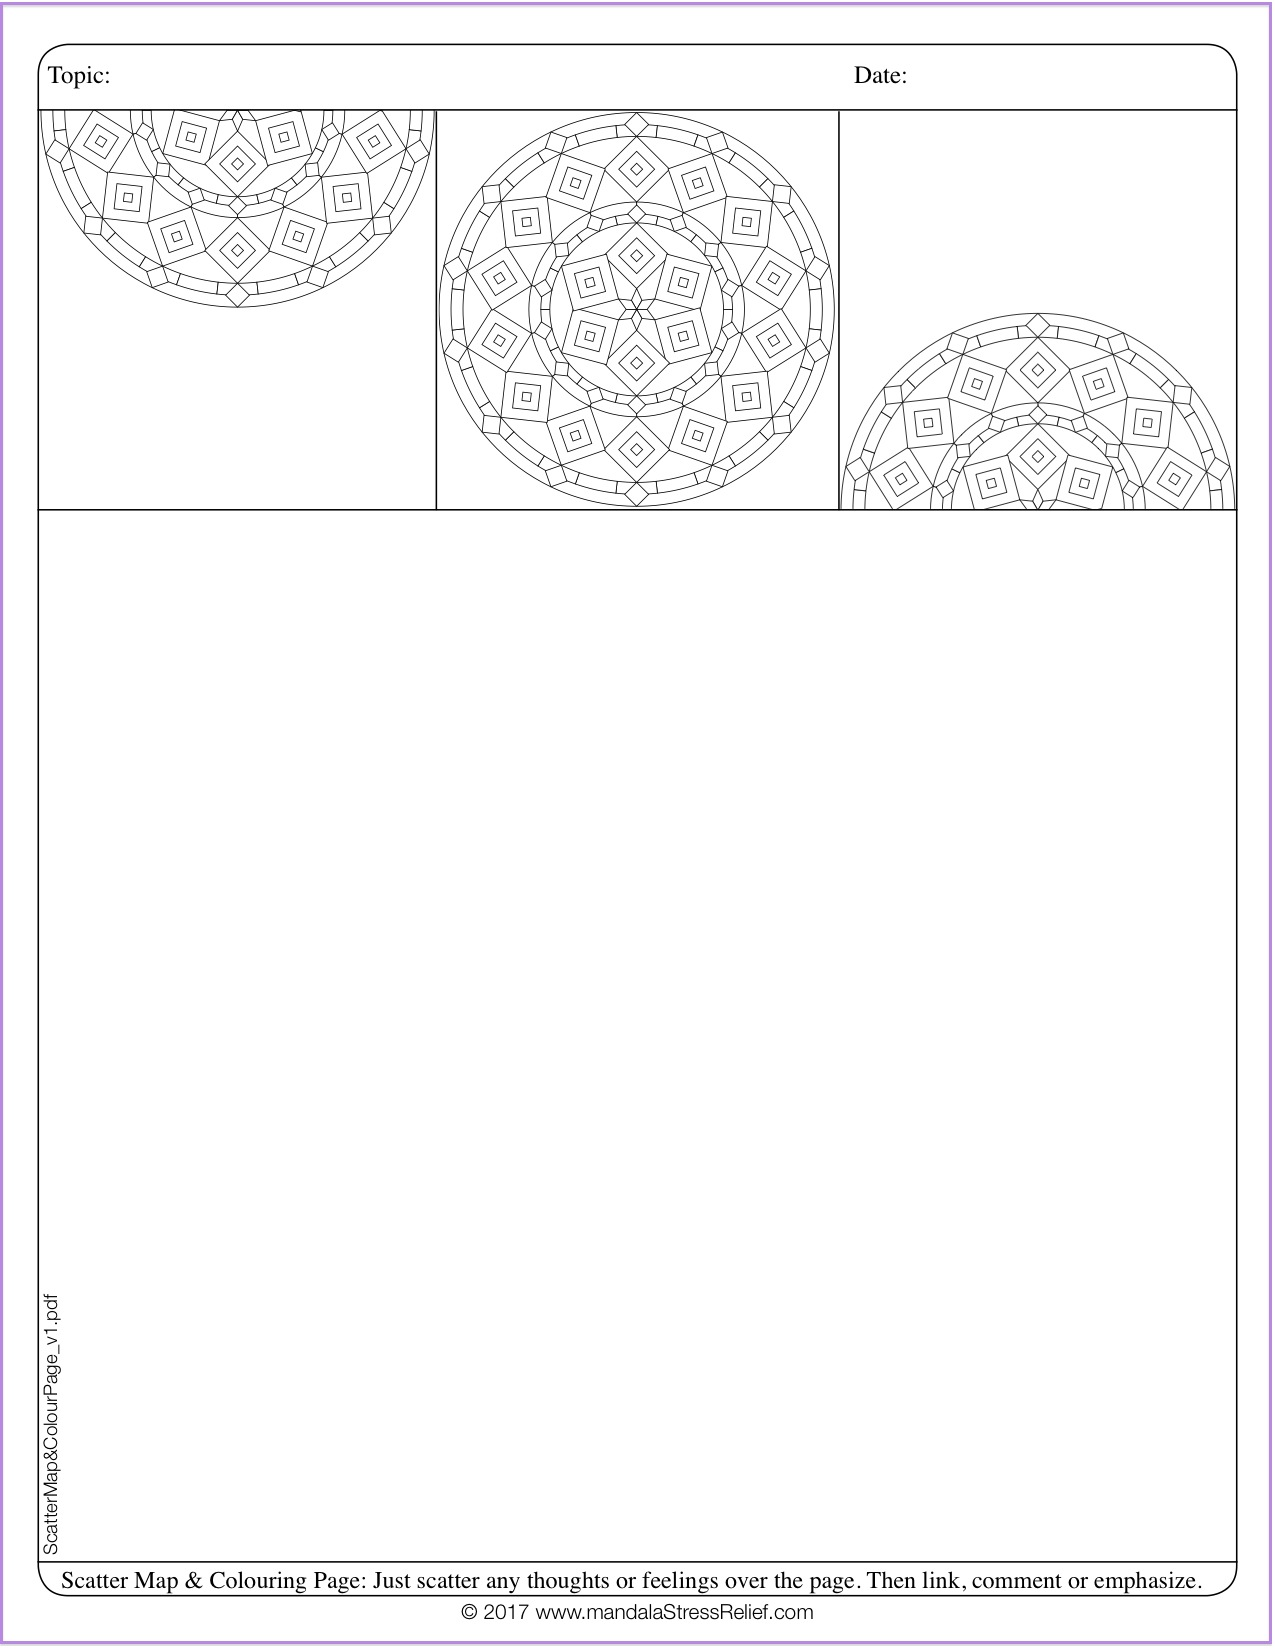 Download a Mandala Colour-Journalling Page  (for scatter-mapping or any other type of journalling).